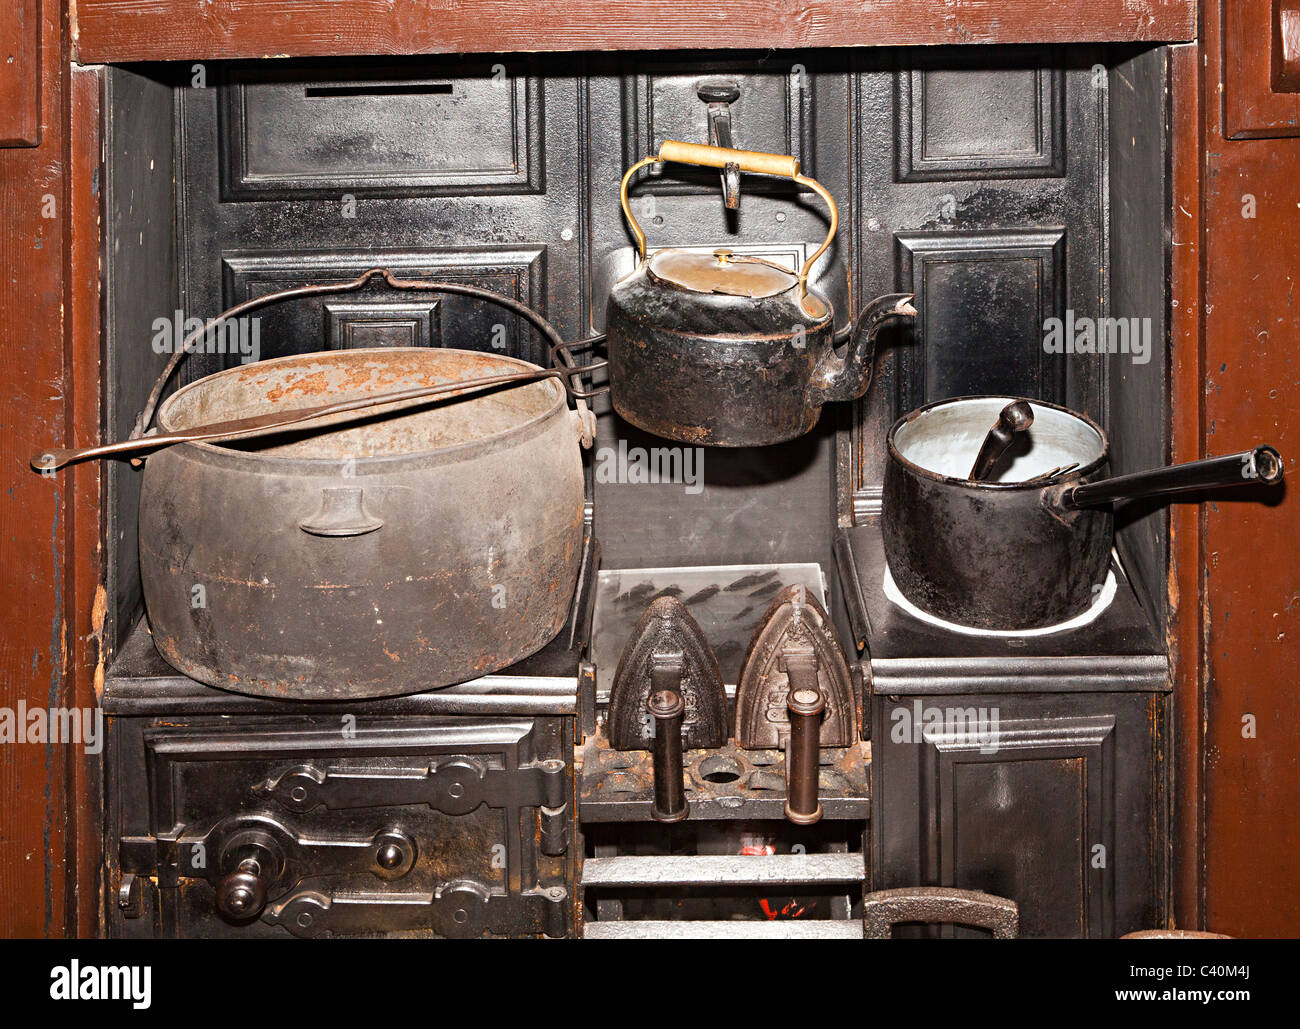 Saucepan kettle pot and irons on range in old kitchen Wales UK - Stock Image